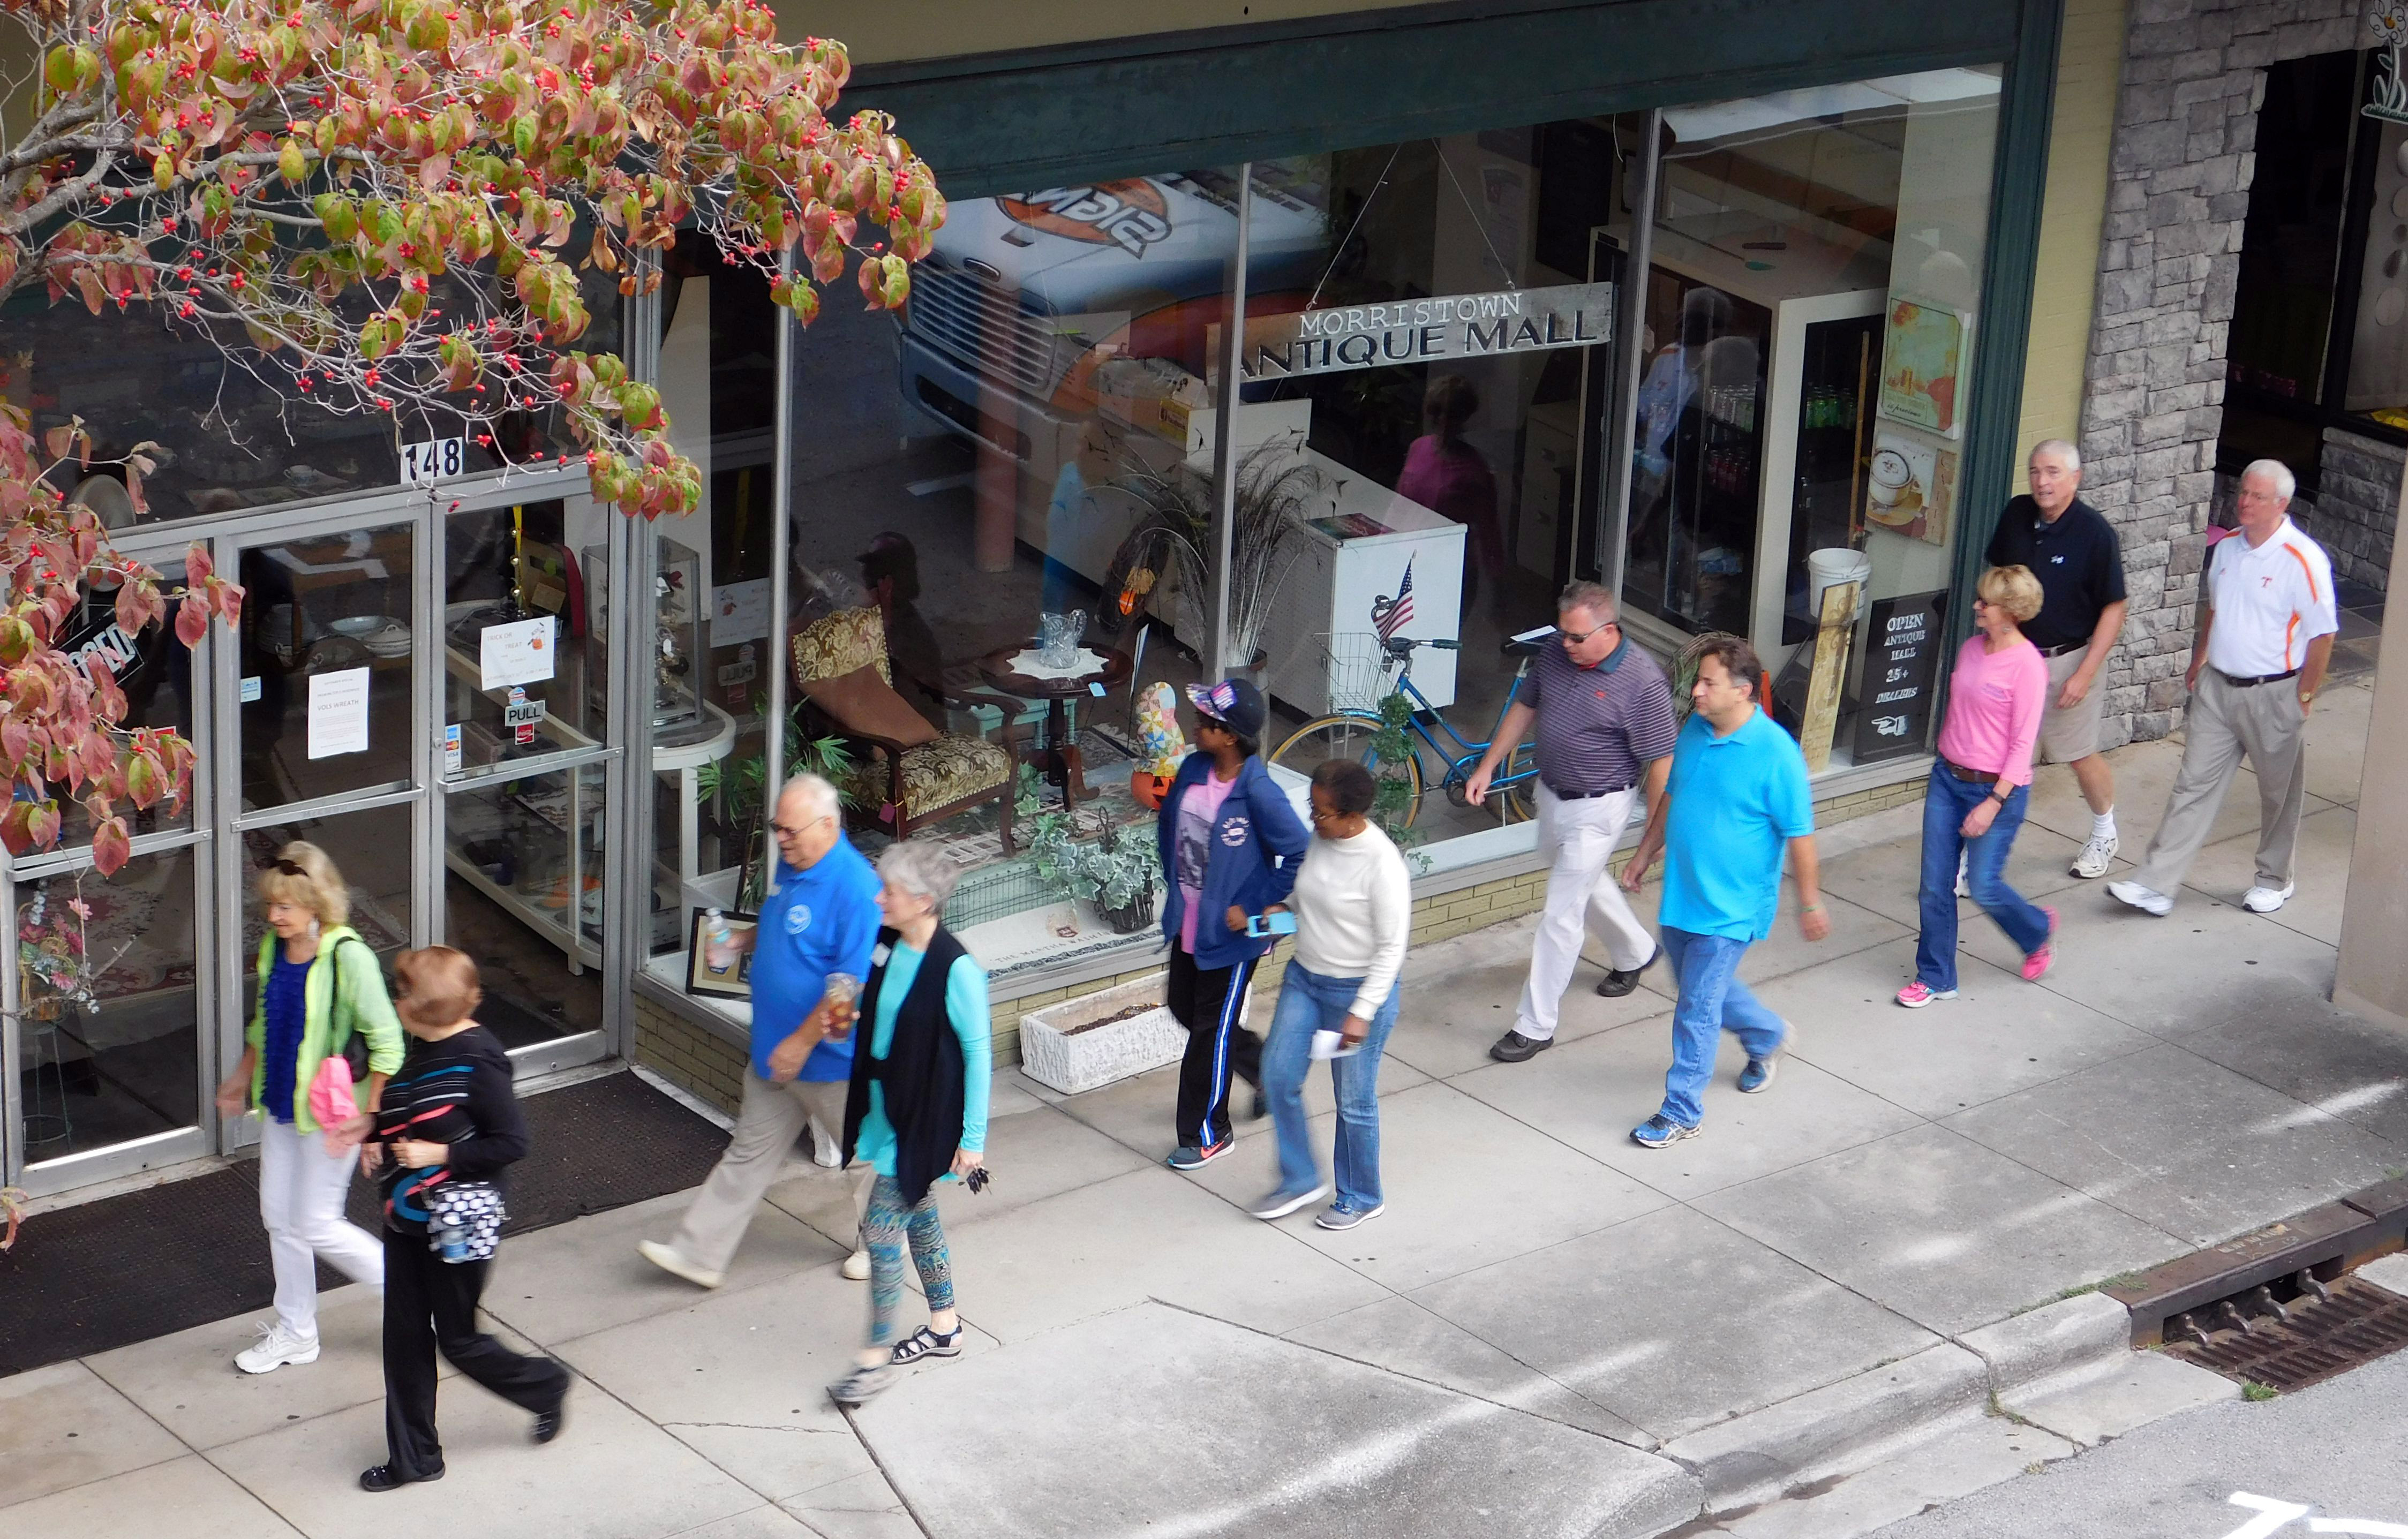 Participants in the Mayors' Mile walk for brain health make their way through downtown Morristown.